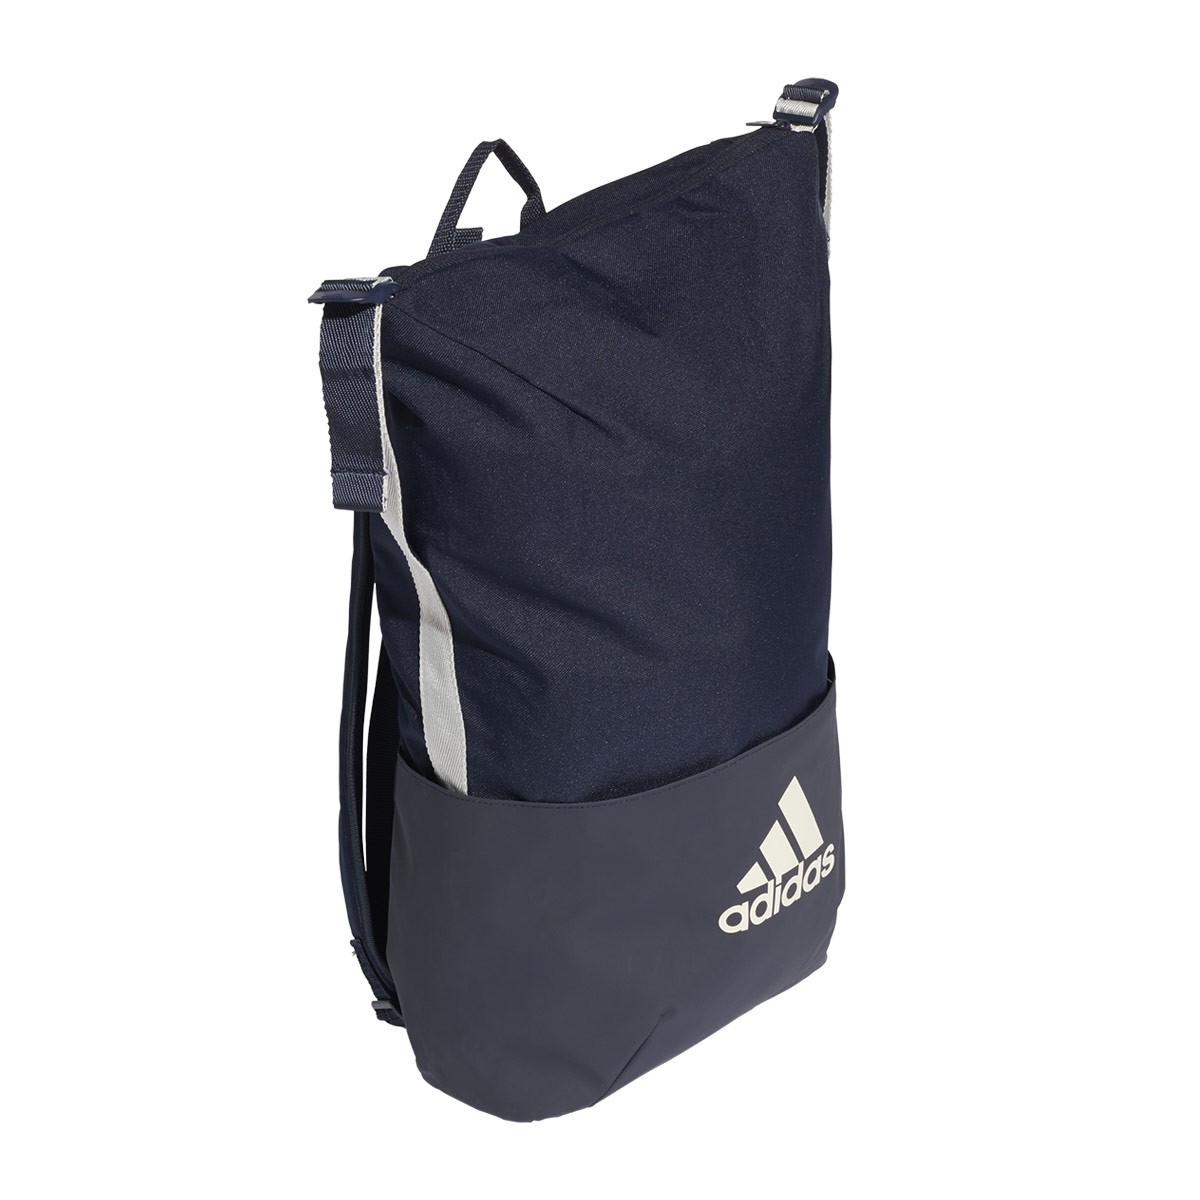 d31c63cd0 Backpack adidas ZNE Core Legend ink-Raw white - Football store Fútbol  Emotion